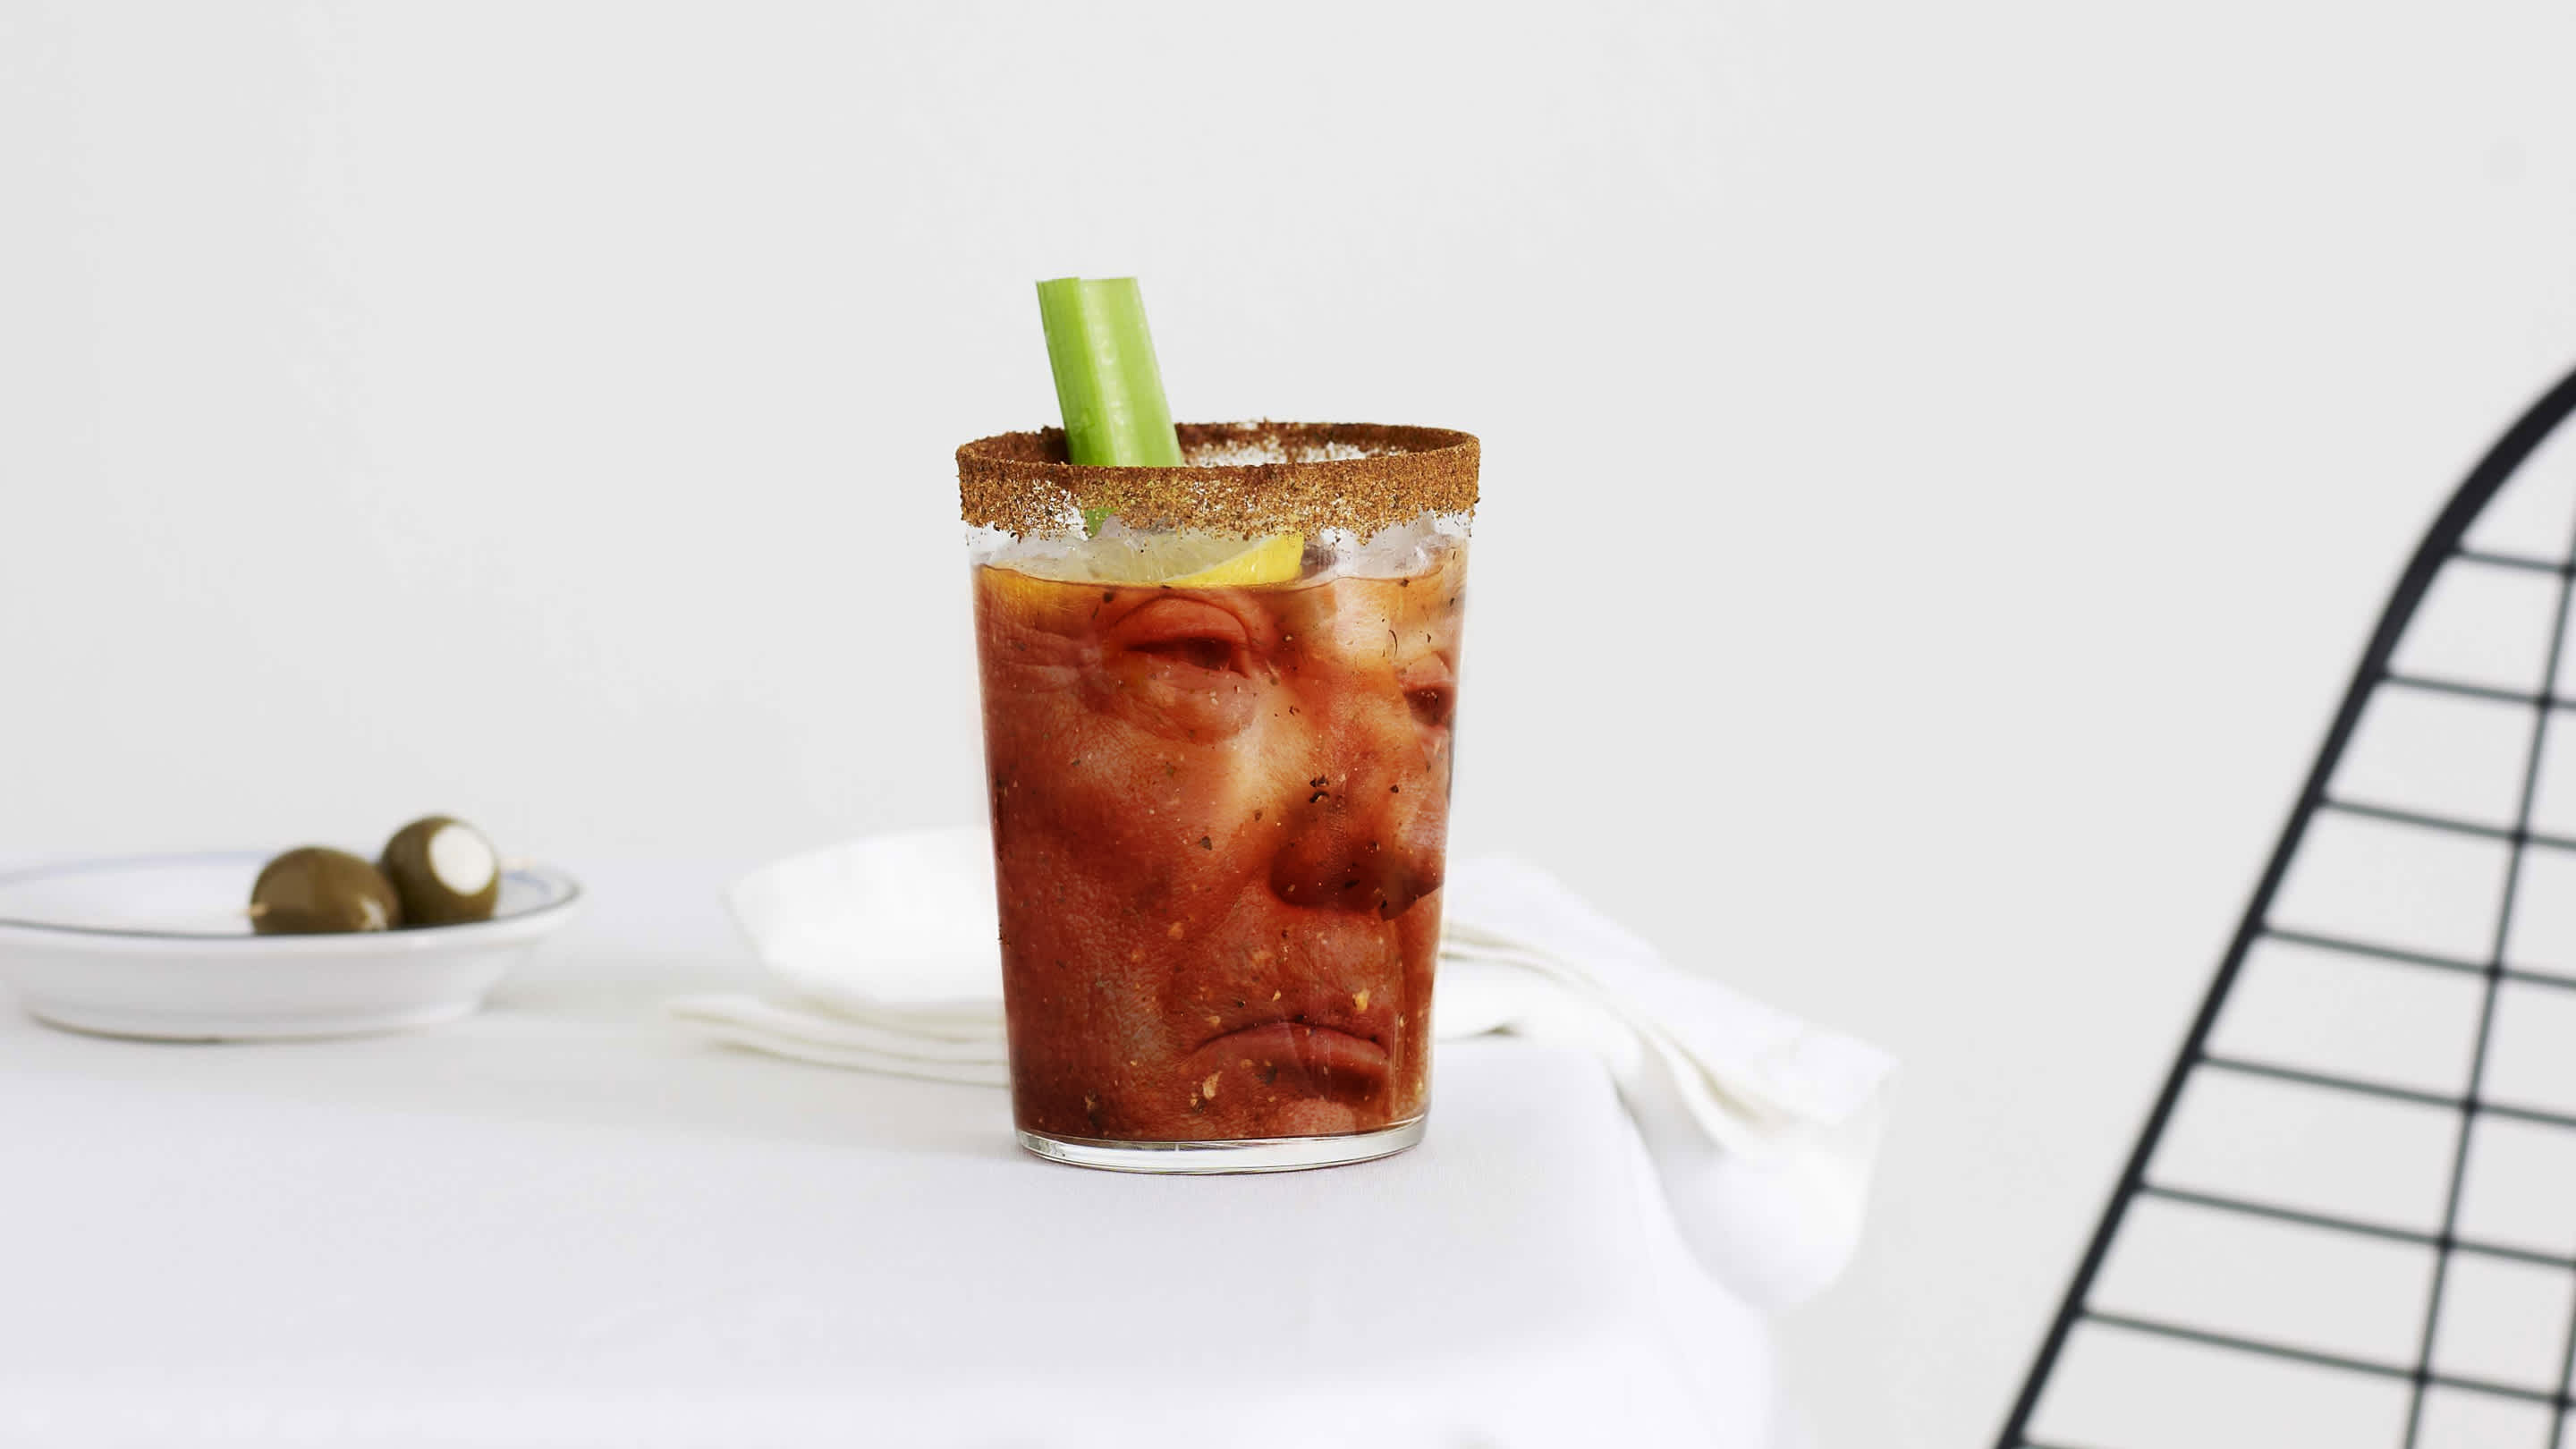 Donald Trump's face embedded in a bloody mary